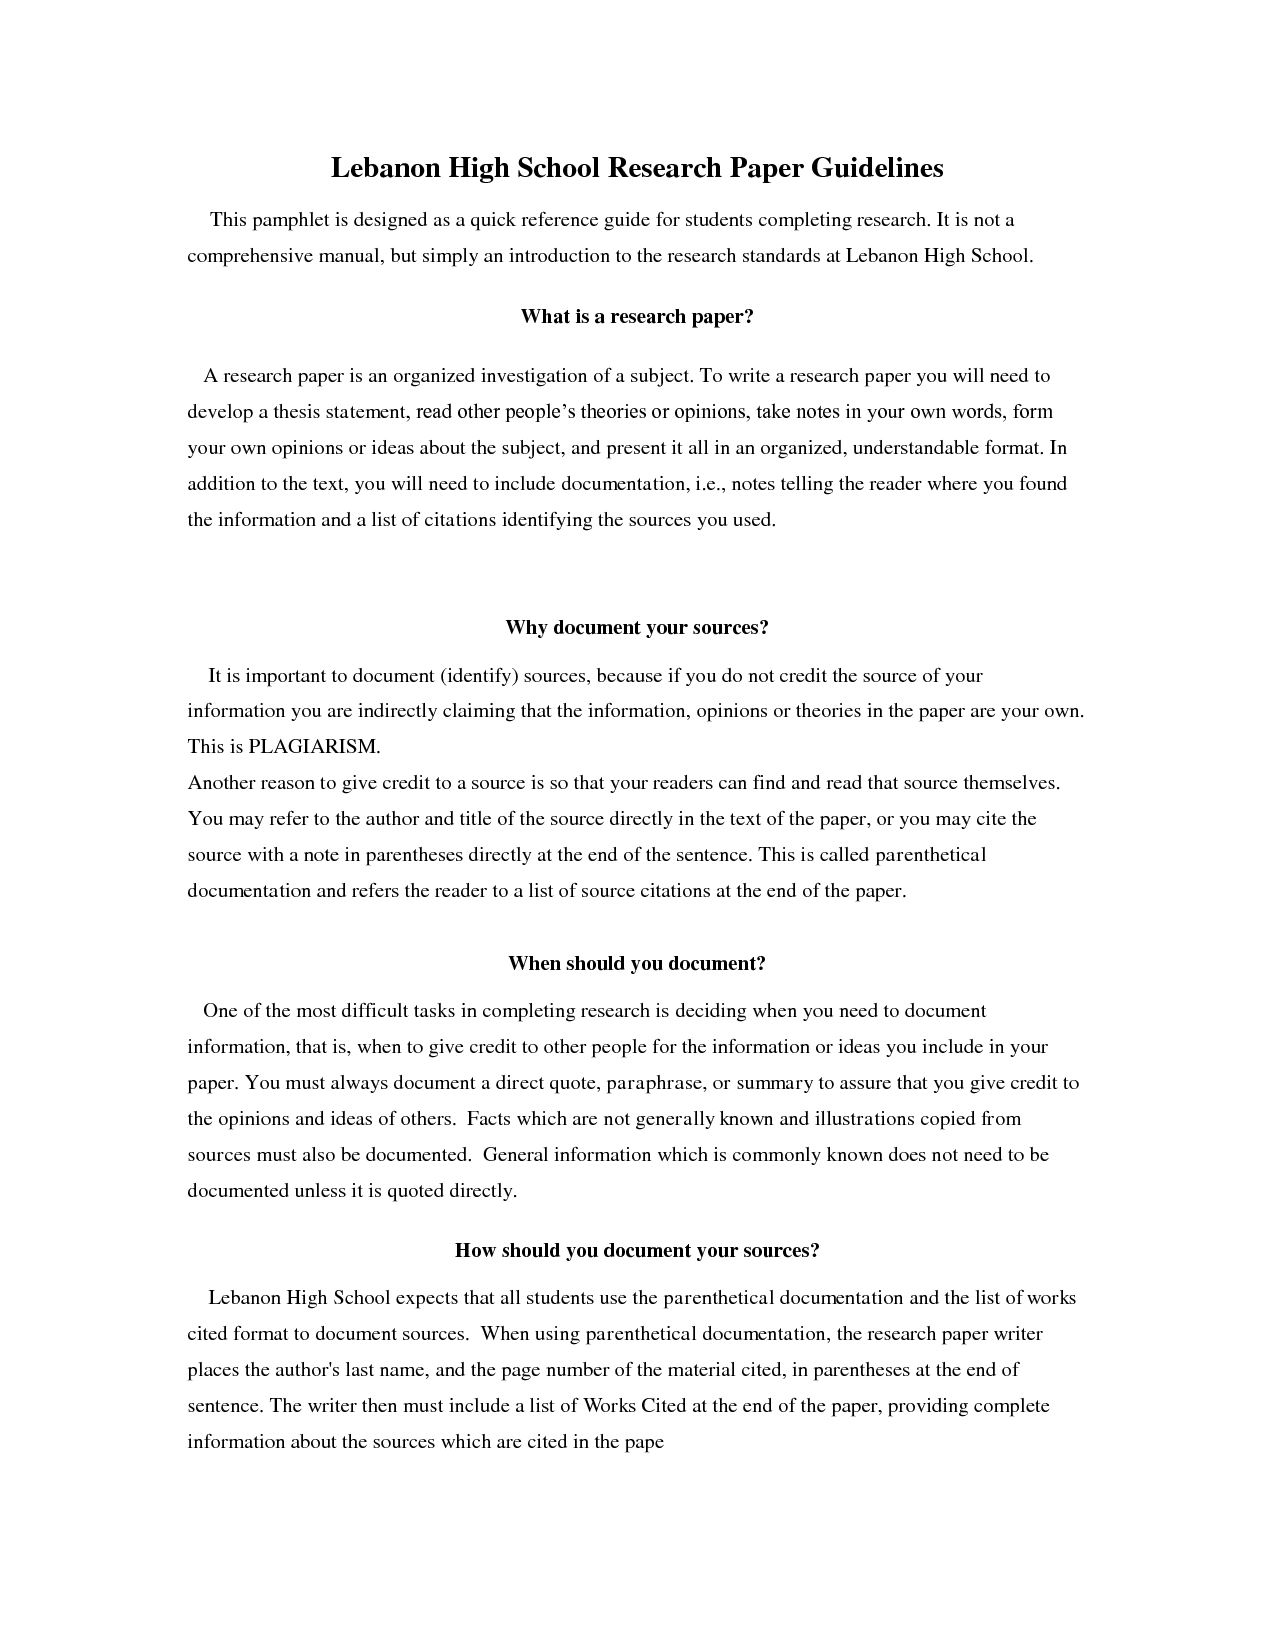 024 Research Paper Brilliant Ideas Of Effective Essay Tips About Good Topic For Nice Topics Papers High School Phenomenal Middle Questions Science Civil War Full